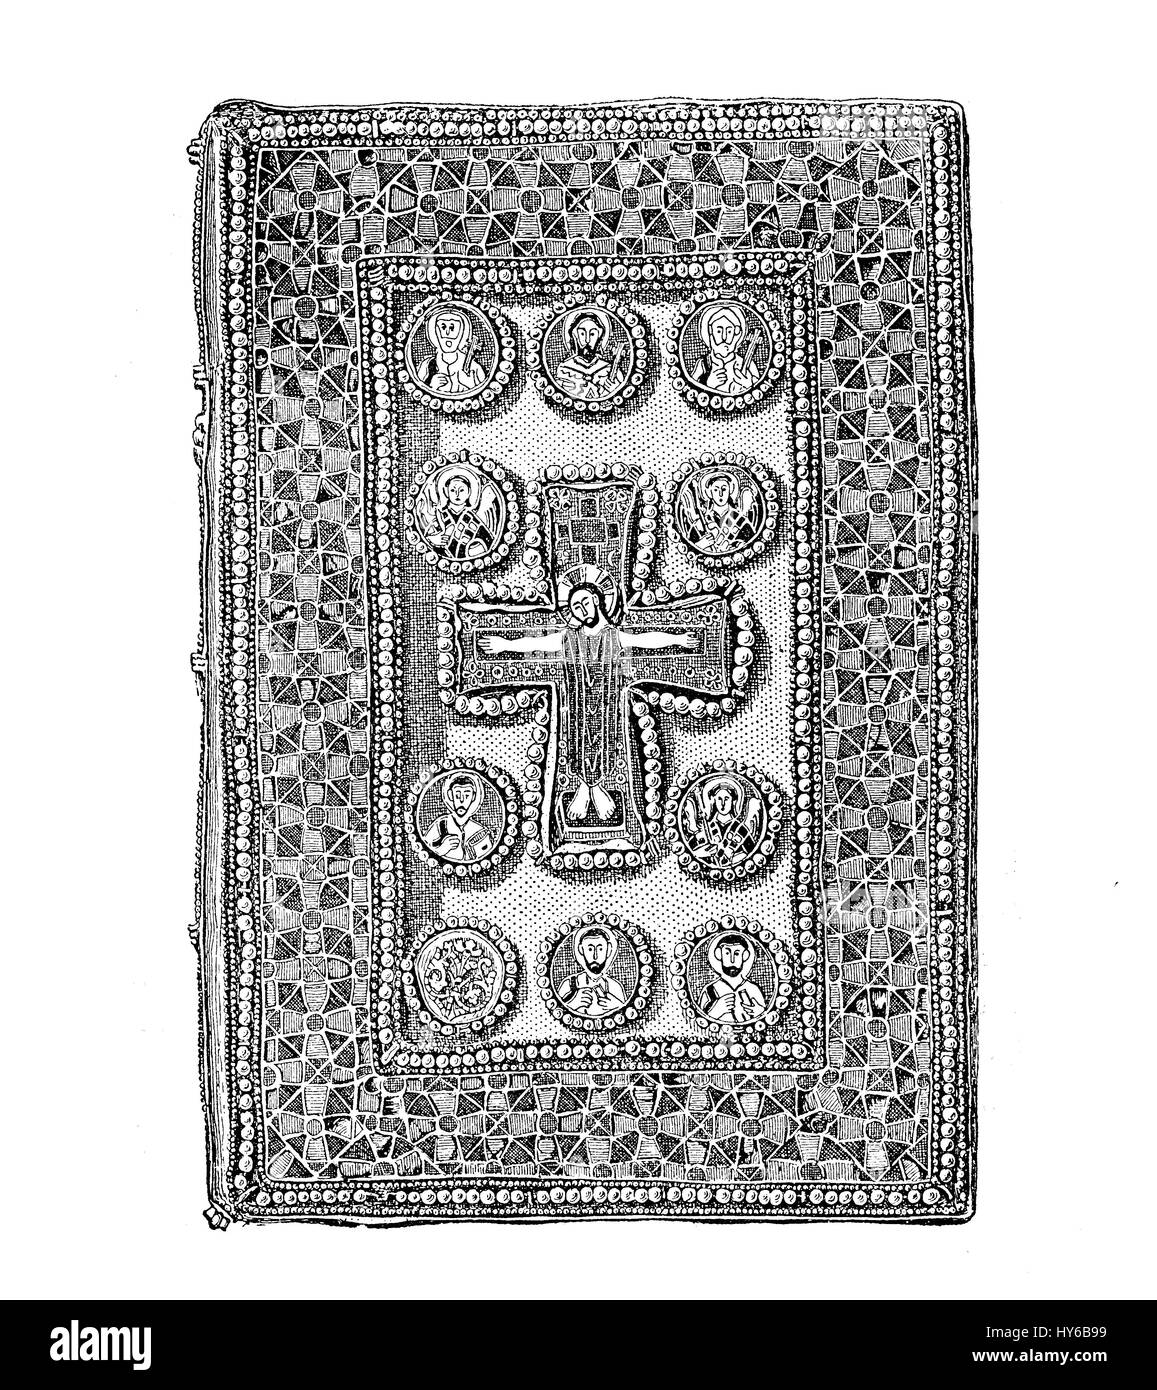 Byzantine jewelled bookbinding, medieval religious book